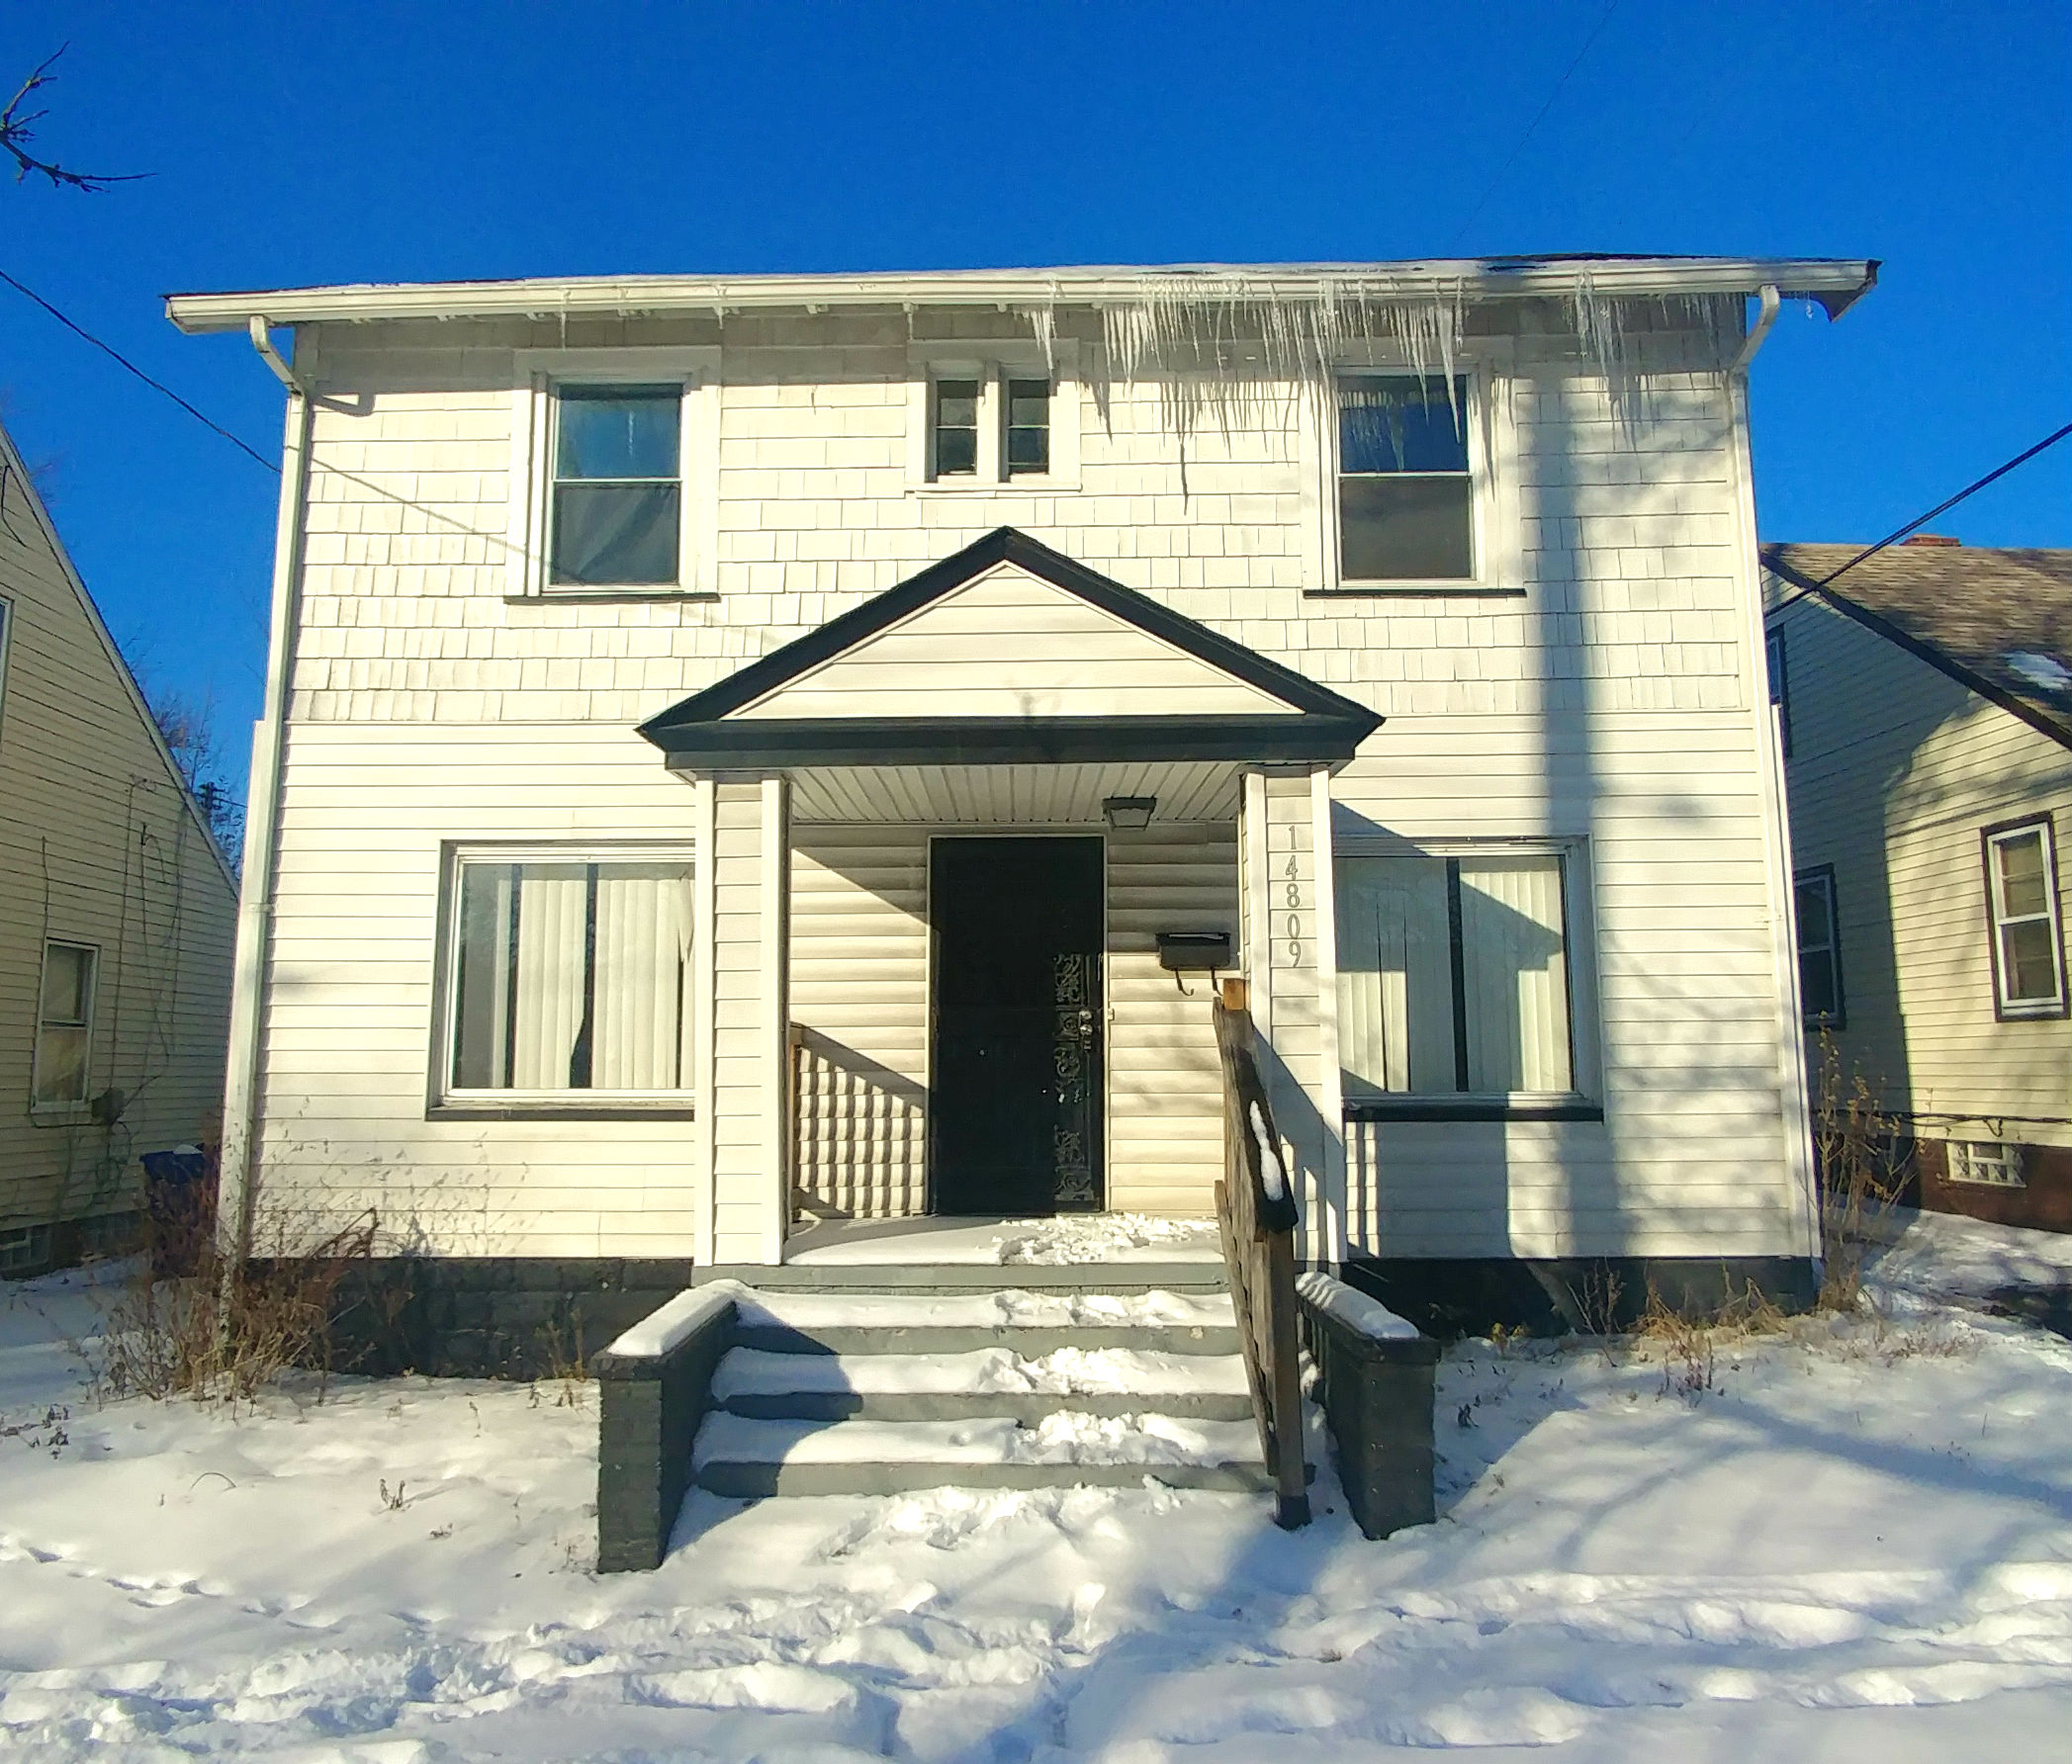 14809 Harvard Ave., Cleveland | 2 bed 1 bath | 1,120 Sq. Ft. | $26,000